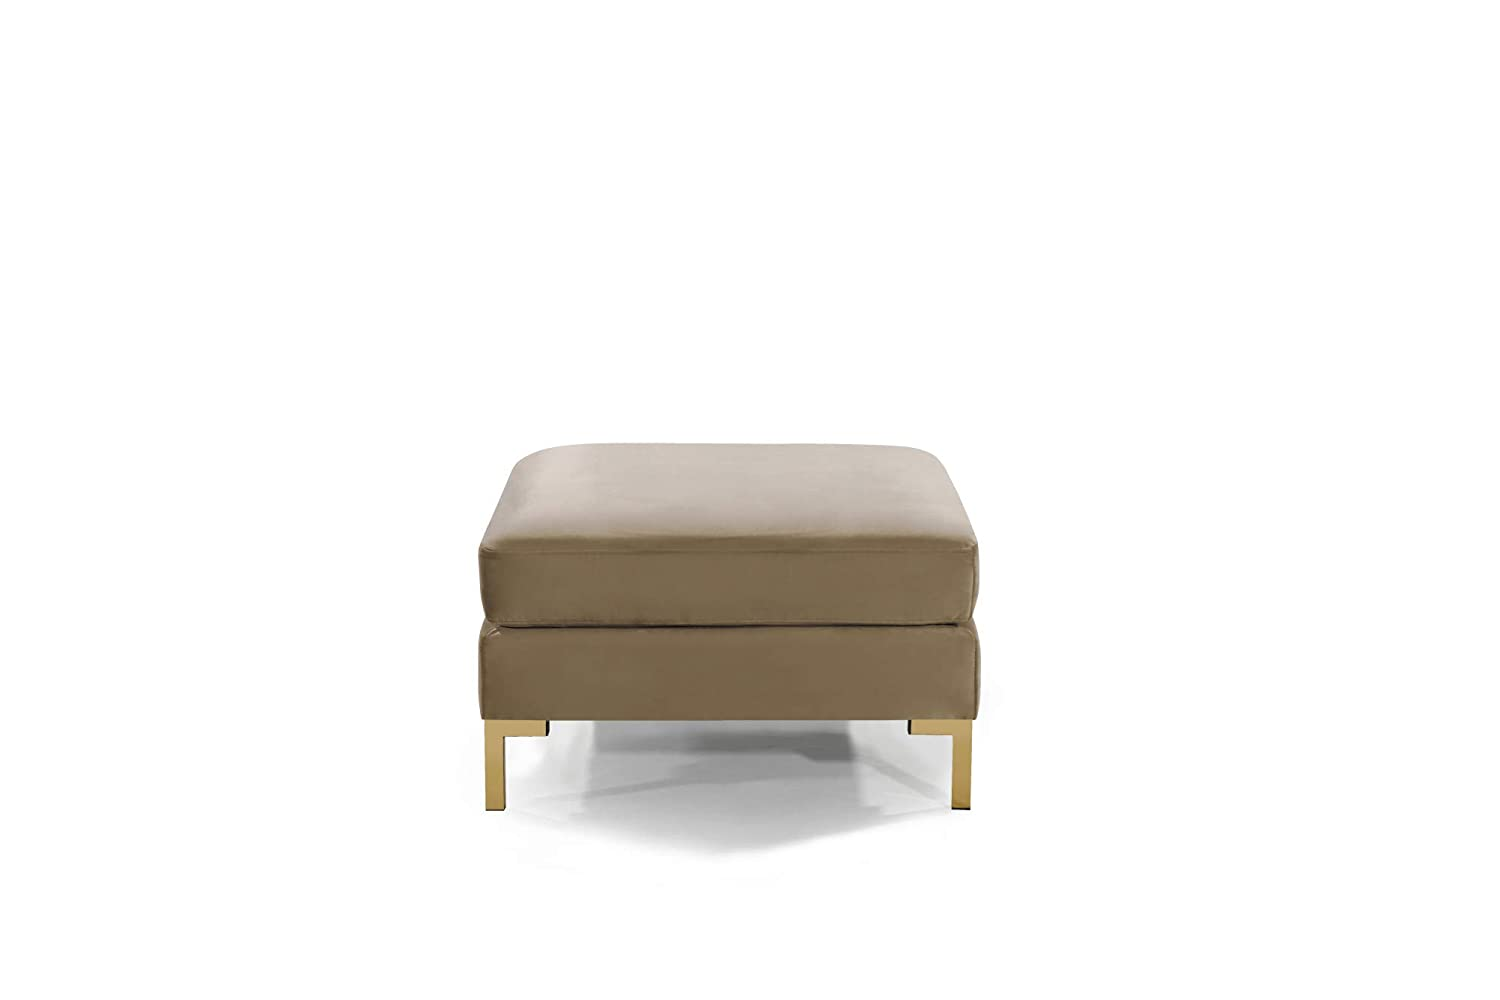 Iconic Home FON9252-AN Girardi Modular Chaise Ottoman Coffee Table Cushion Velvet Upholstered Solid Gold Tone Metal Y-Leg Modern Contemporary Black